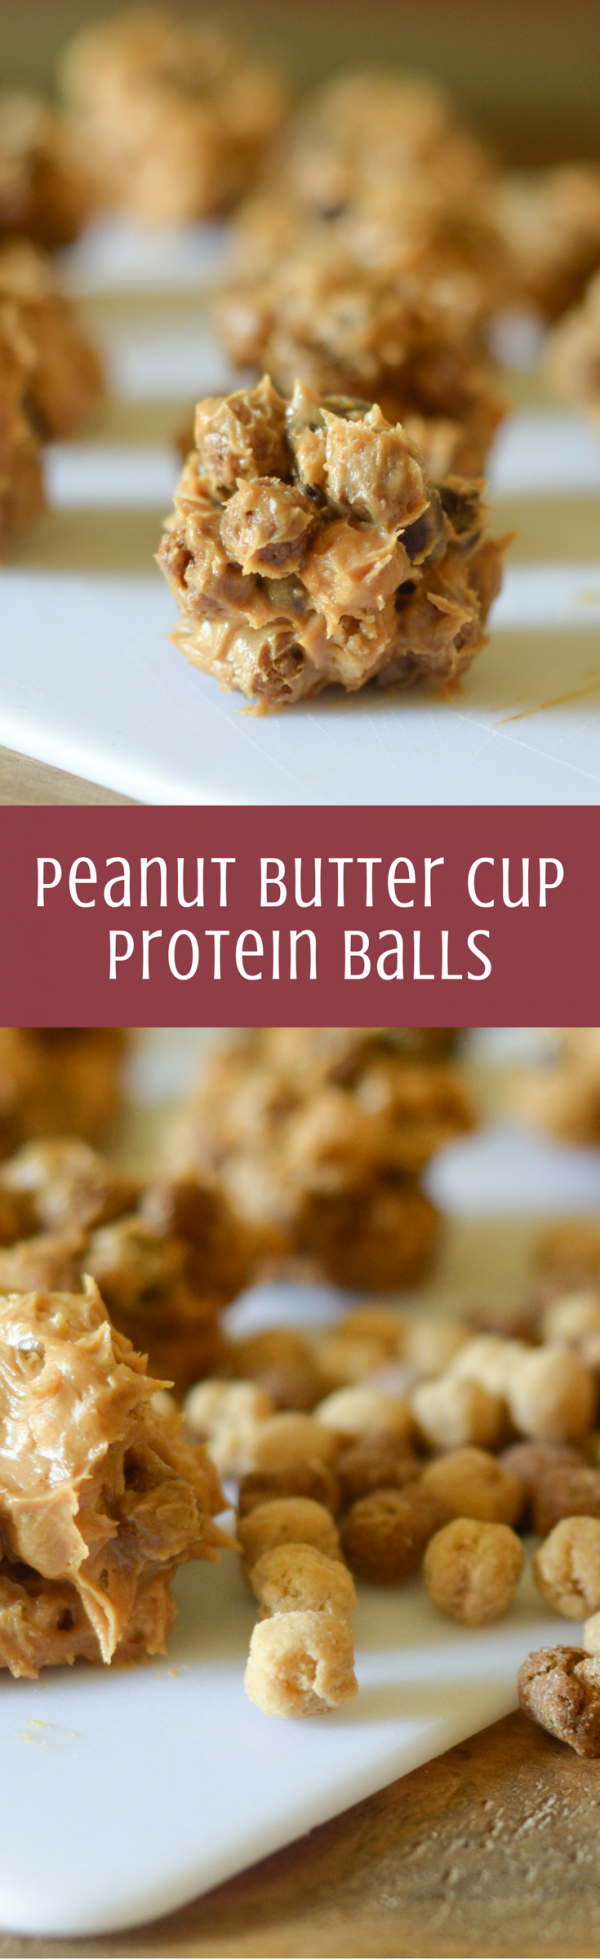 Peanut Butter Cup Protein Balls #PostCerealCreations #ad